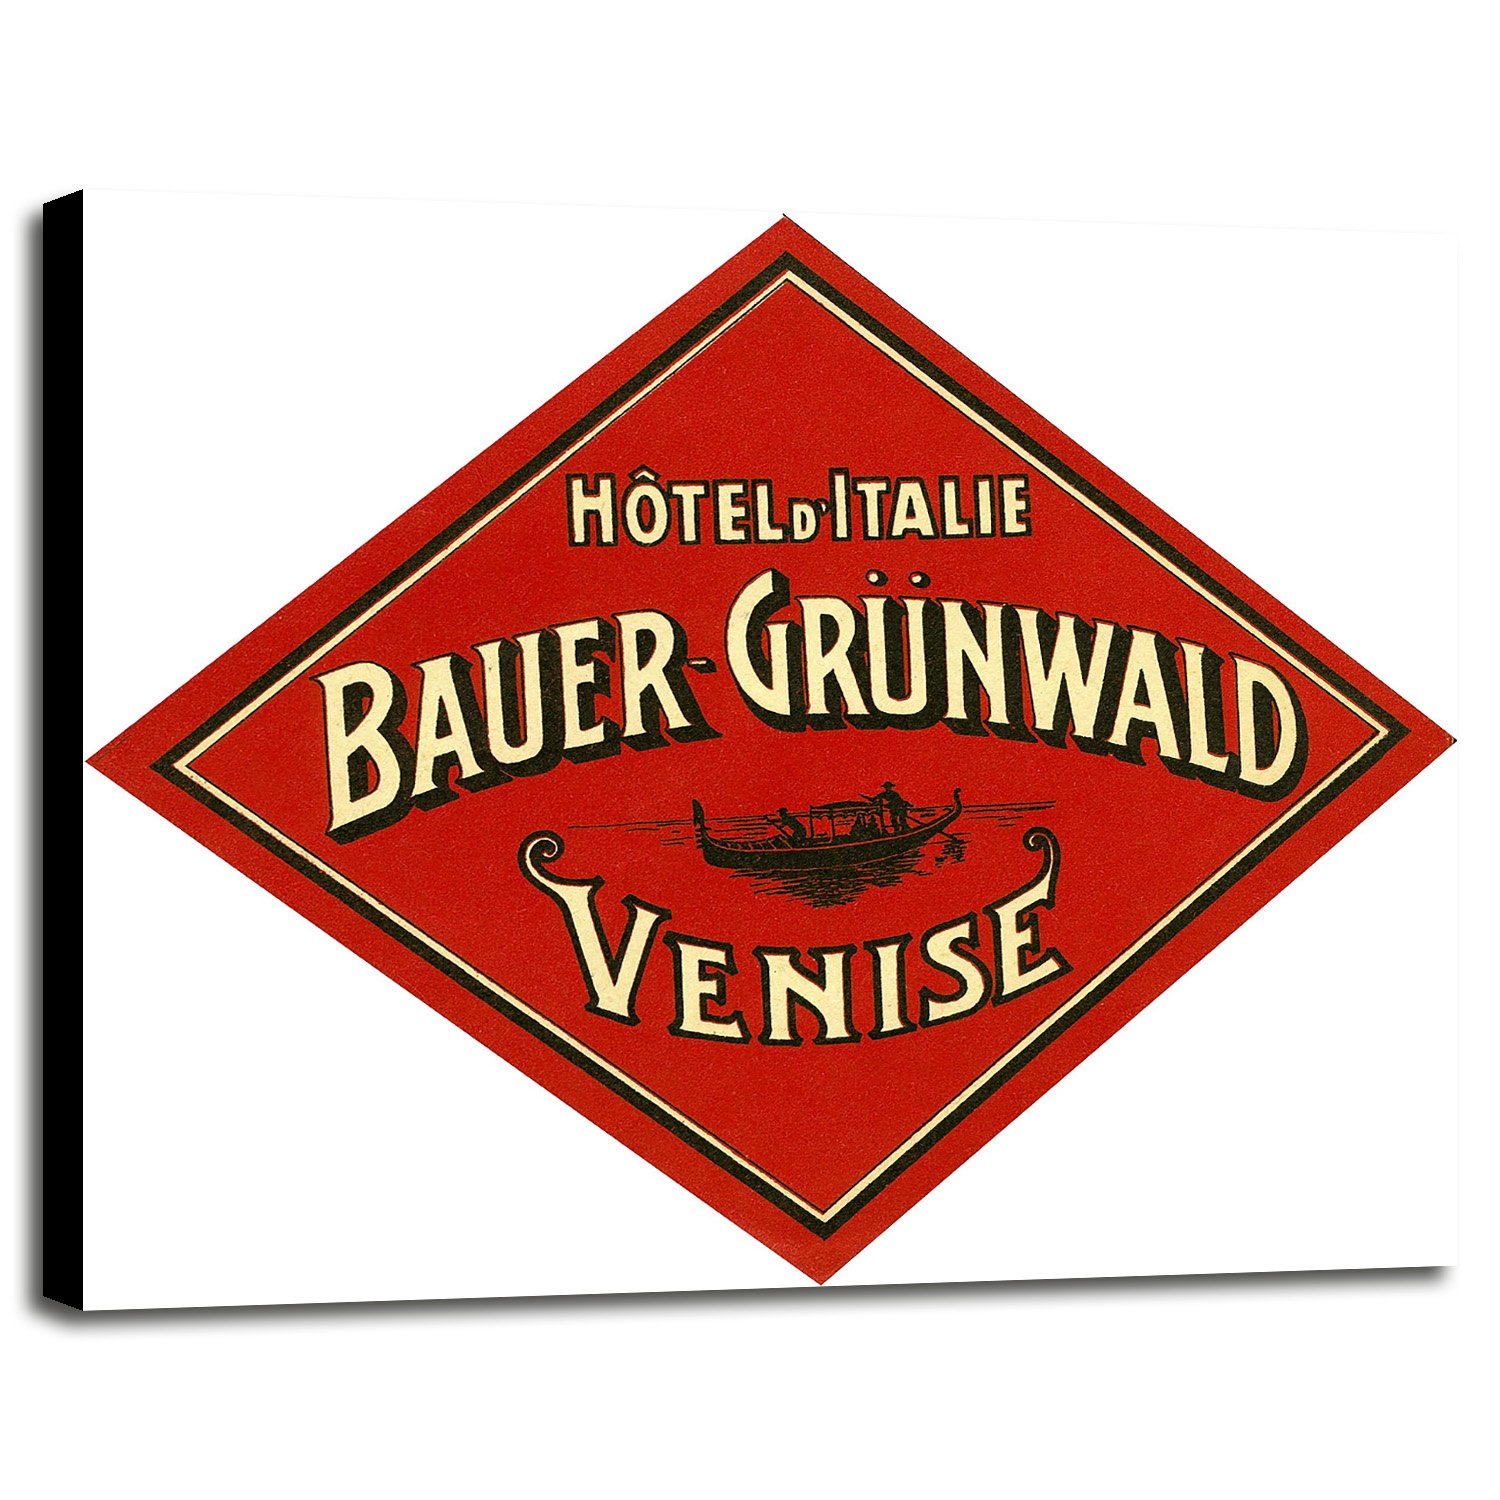 Hotel d'Italie, Bauer- Grunwald, Venise -PRIPUB129042 Print 20.5''x23.5'' by Print Collection in a Canvas Stretched in Maple Frame